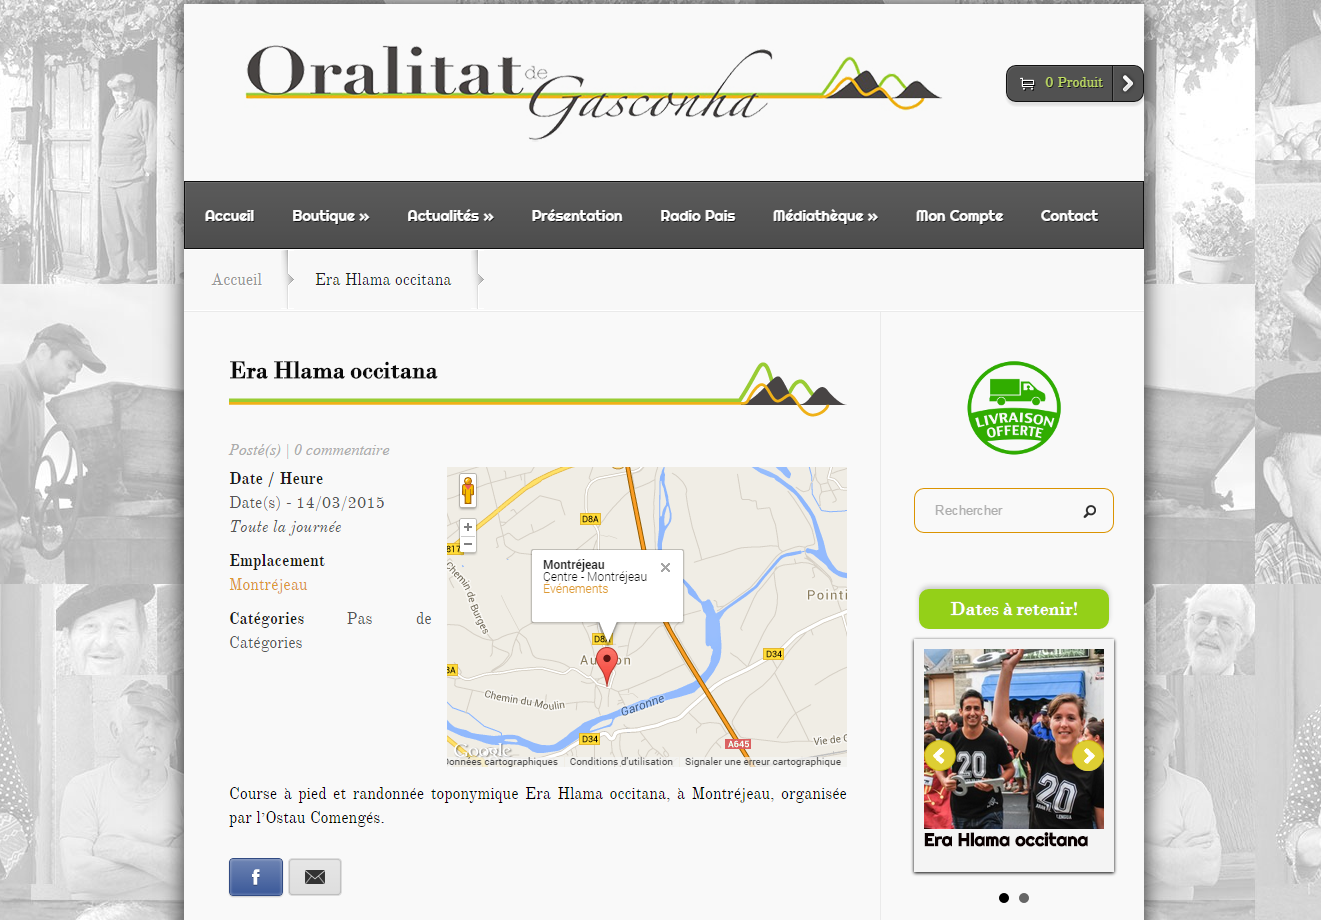 Boutique en ligne oralitat de gasconha a votre id e for Idee creation site internet